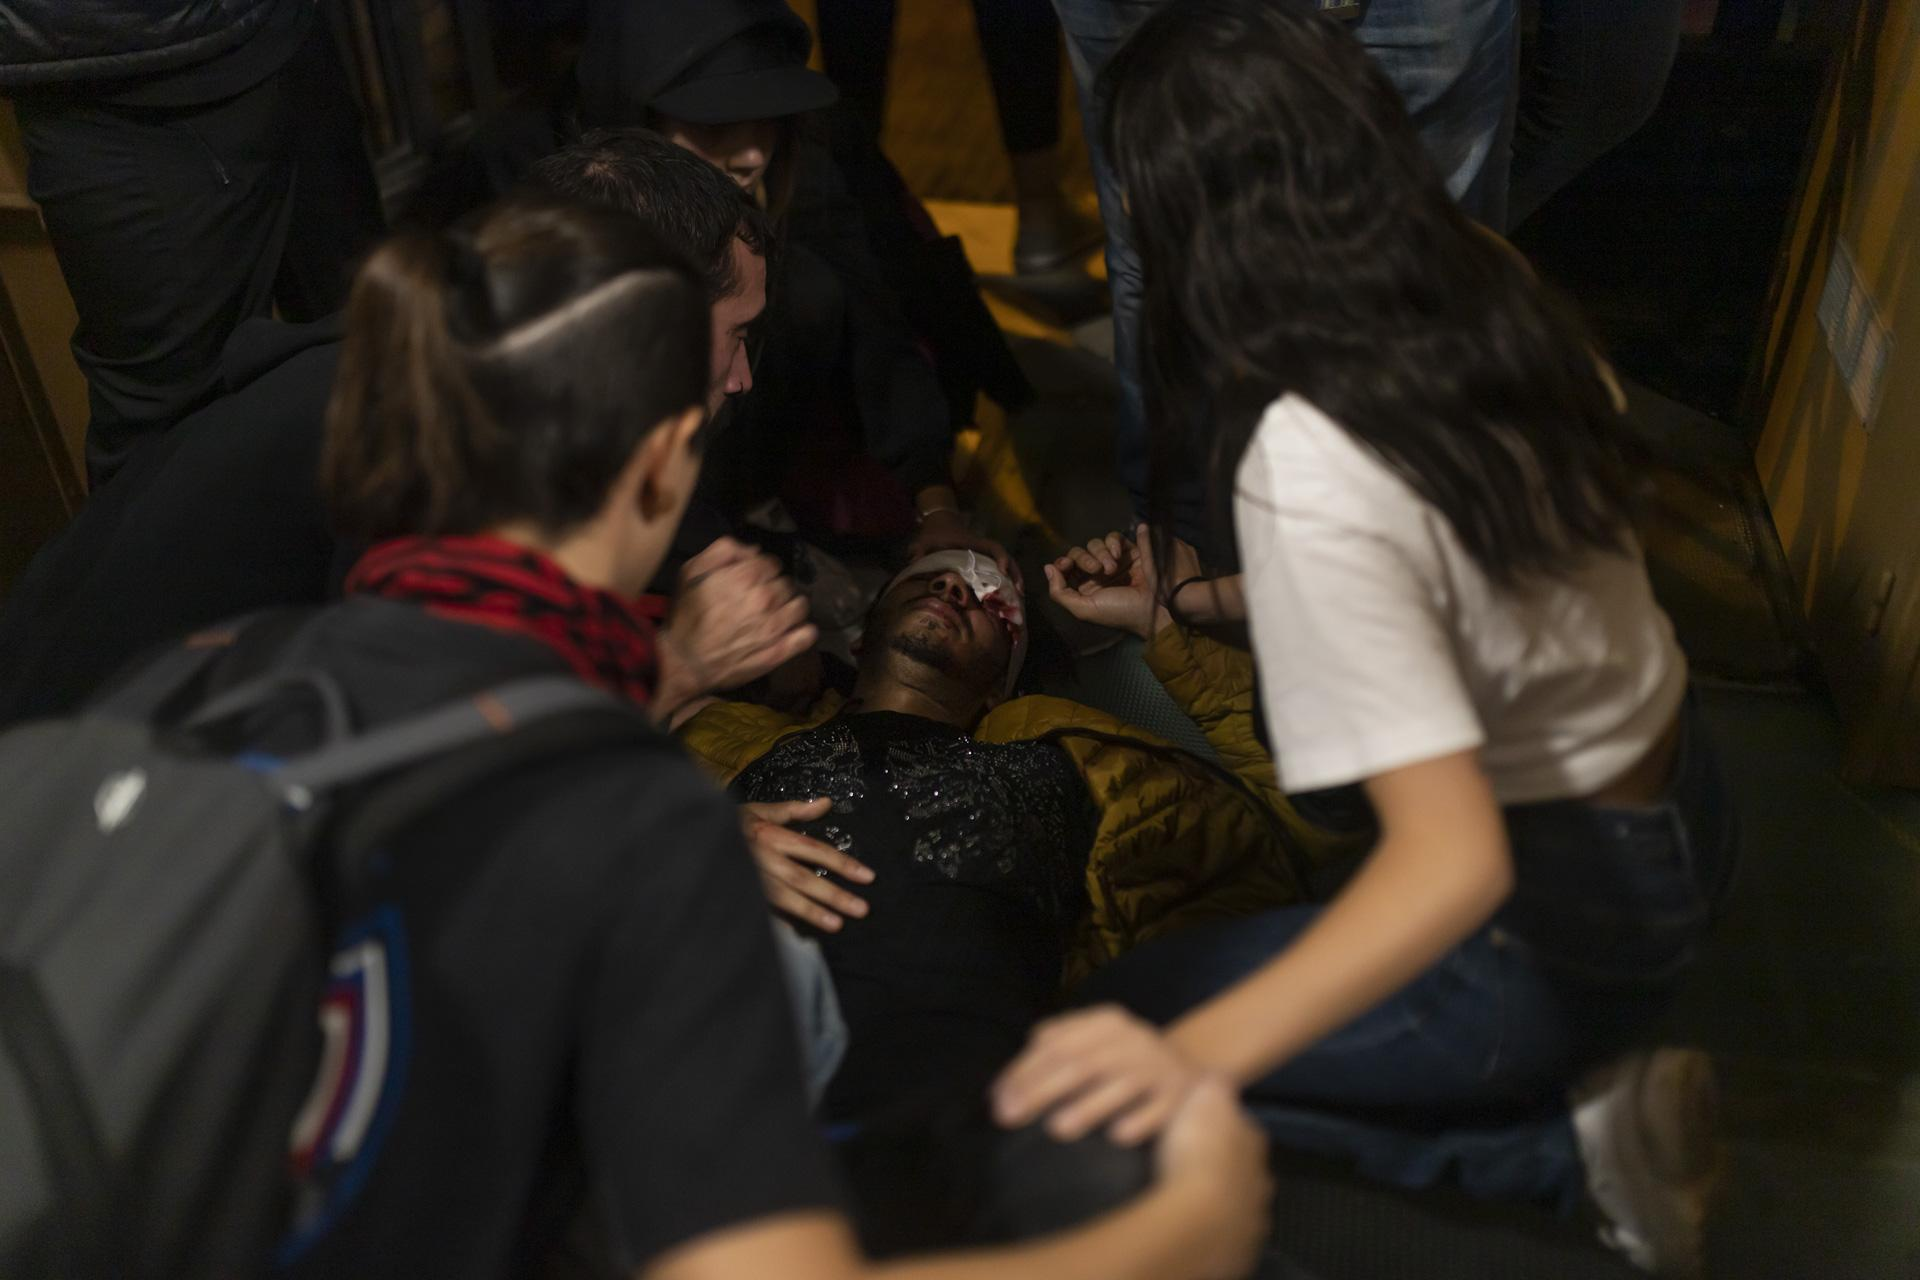 One injured in the demonstrations lost the sight of one eye when the eyeball exploded due to the impact of a rubber bullet. Another lost testicular mass and another three-person lost the vision of one eye during the protests. October 2019, Barcelona, Spain.